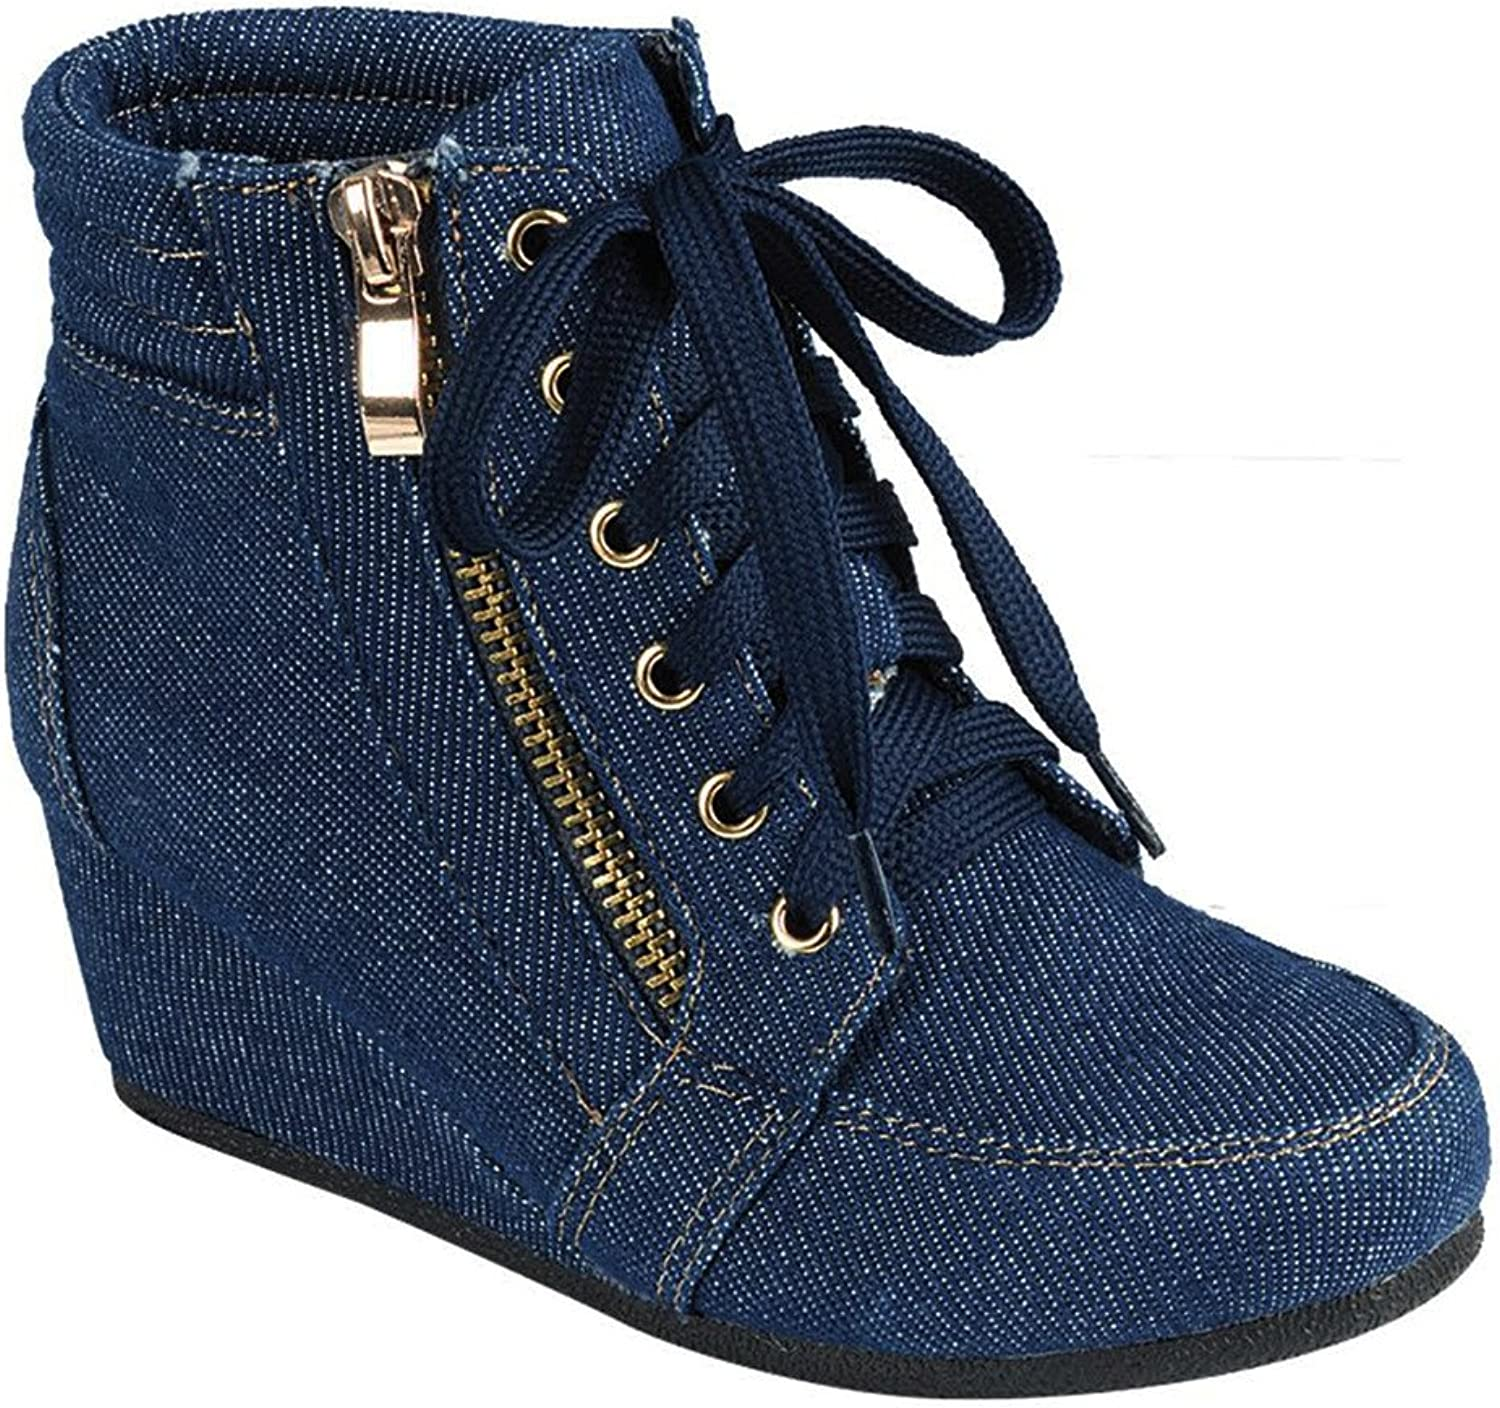 Women High Top Wedge Heel Sneakers Platform Lace Up shoes Ankle Bootie, Size 6.5, bluele Jean